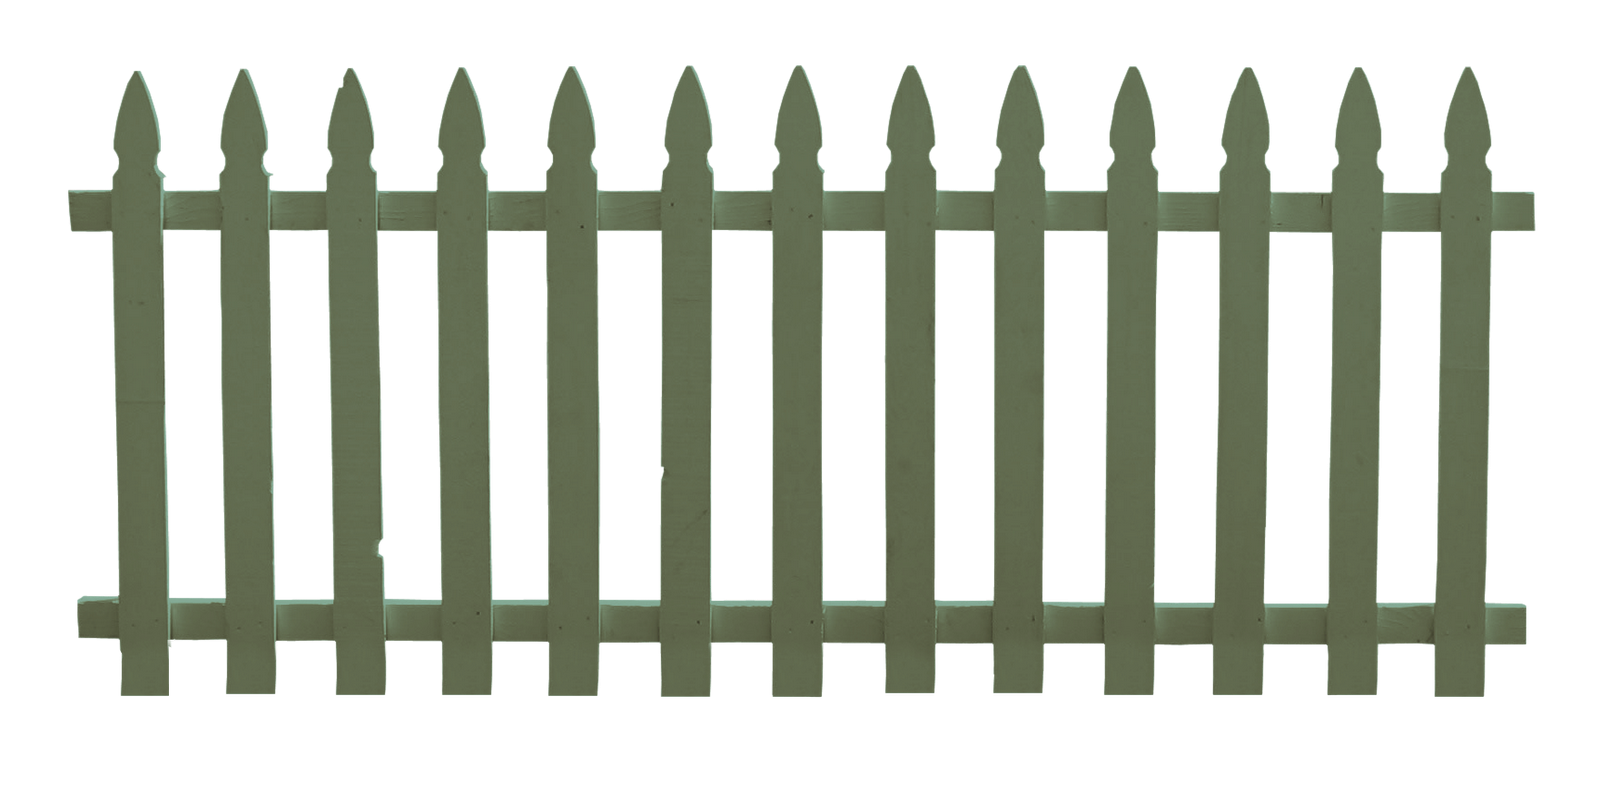 Slanted fence clipart clipart images gallery for free.